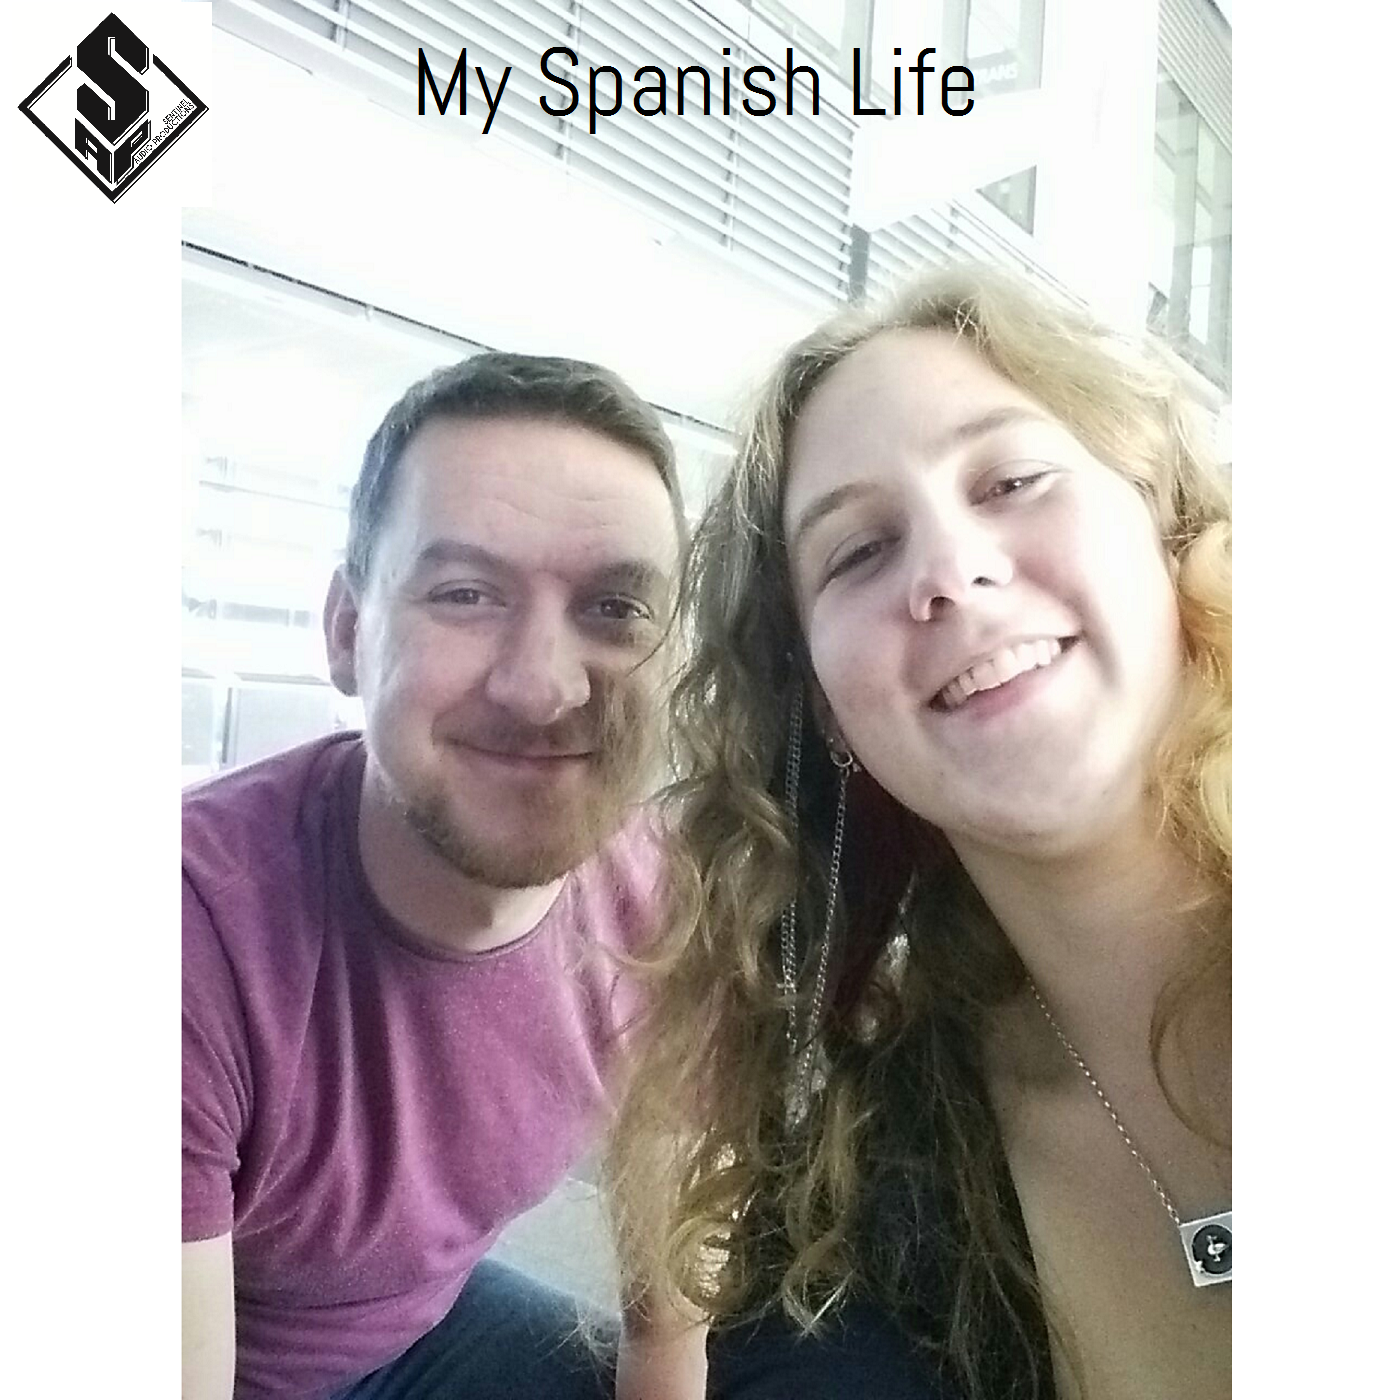 My Spanish Life with hosts Eimear NíFhaoláin and Dan O'Toole  My Spanish Life is a show chronicling Eimear and Dan's new life in a sleepy town in the Rioja region of Spain where they moved in late 2015 to teach English. Each show they discuss the culture shock of moving your entire life to a small town in Northern Spain.